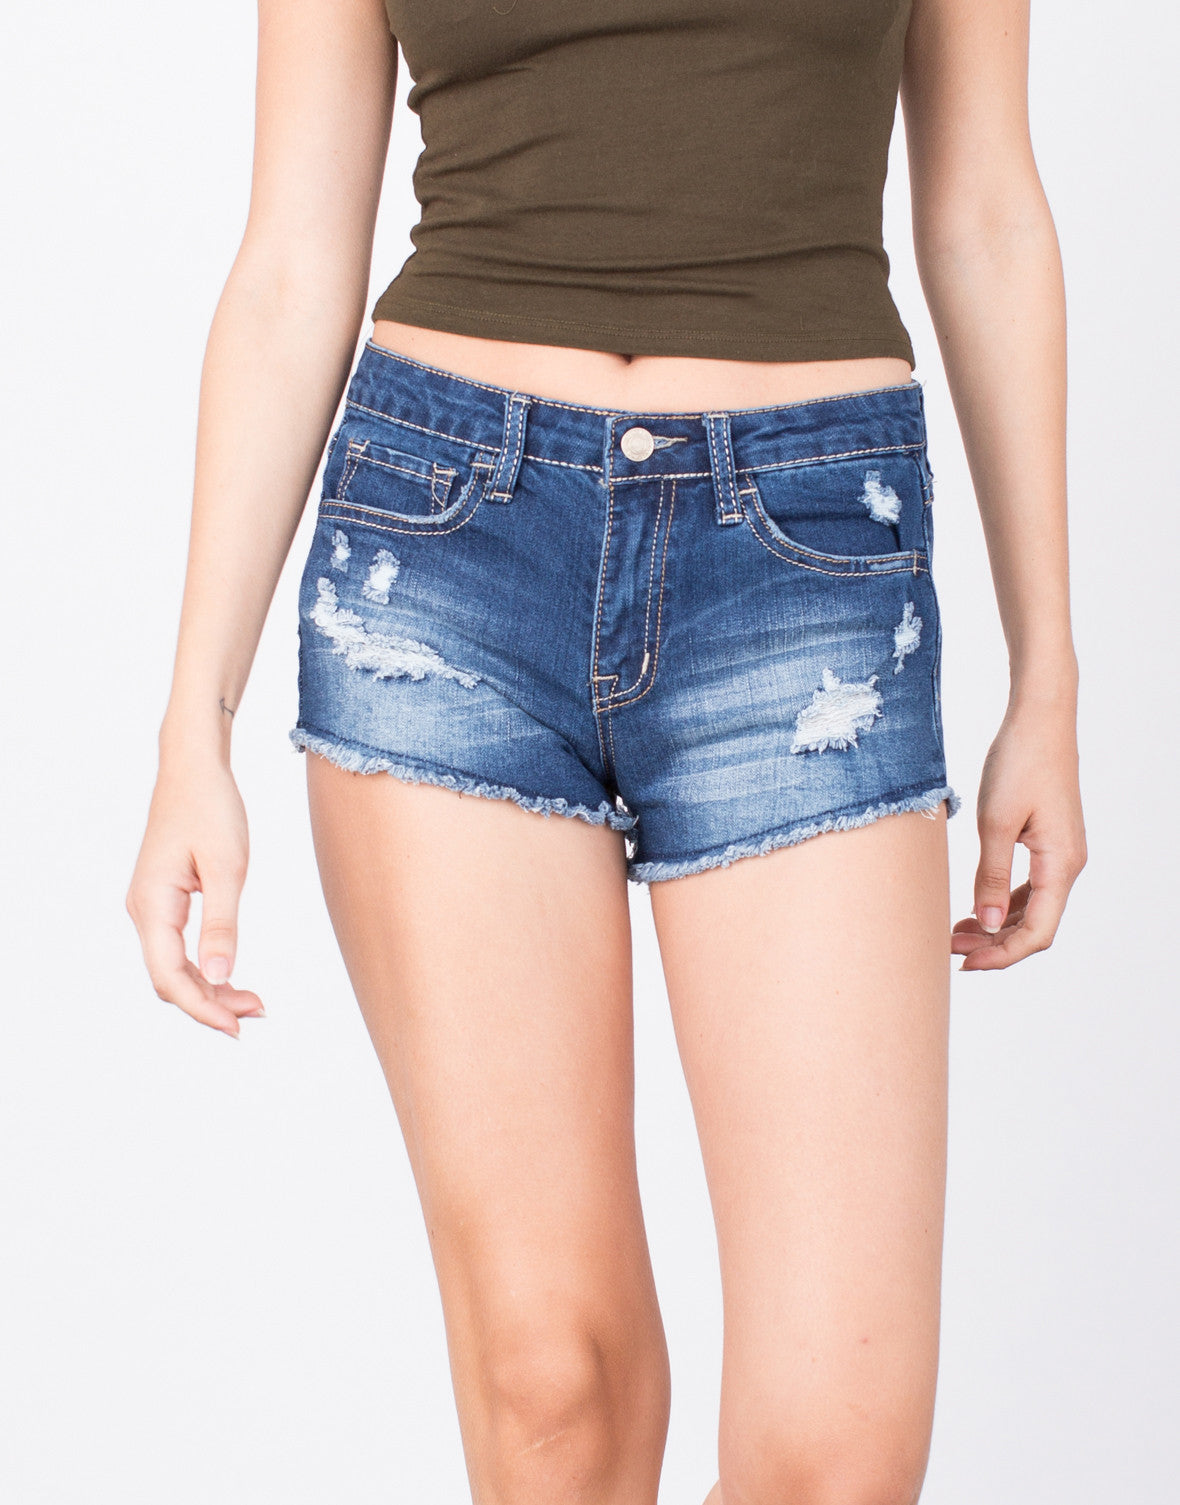 Detail of Stitched and Frayed Denim Shorts